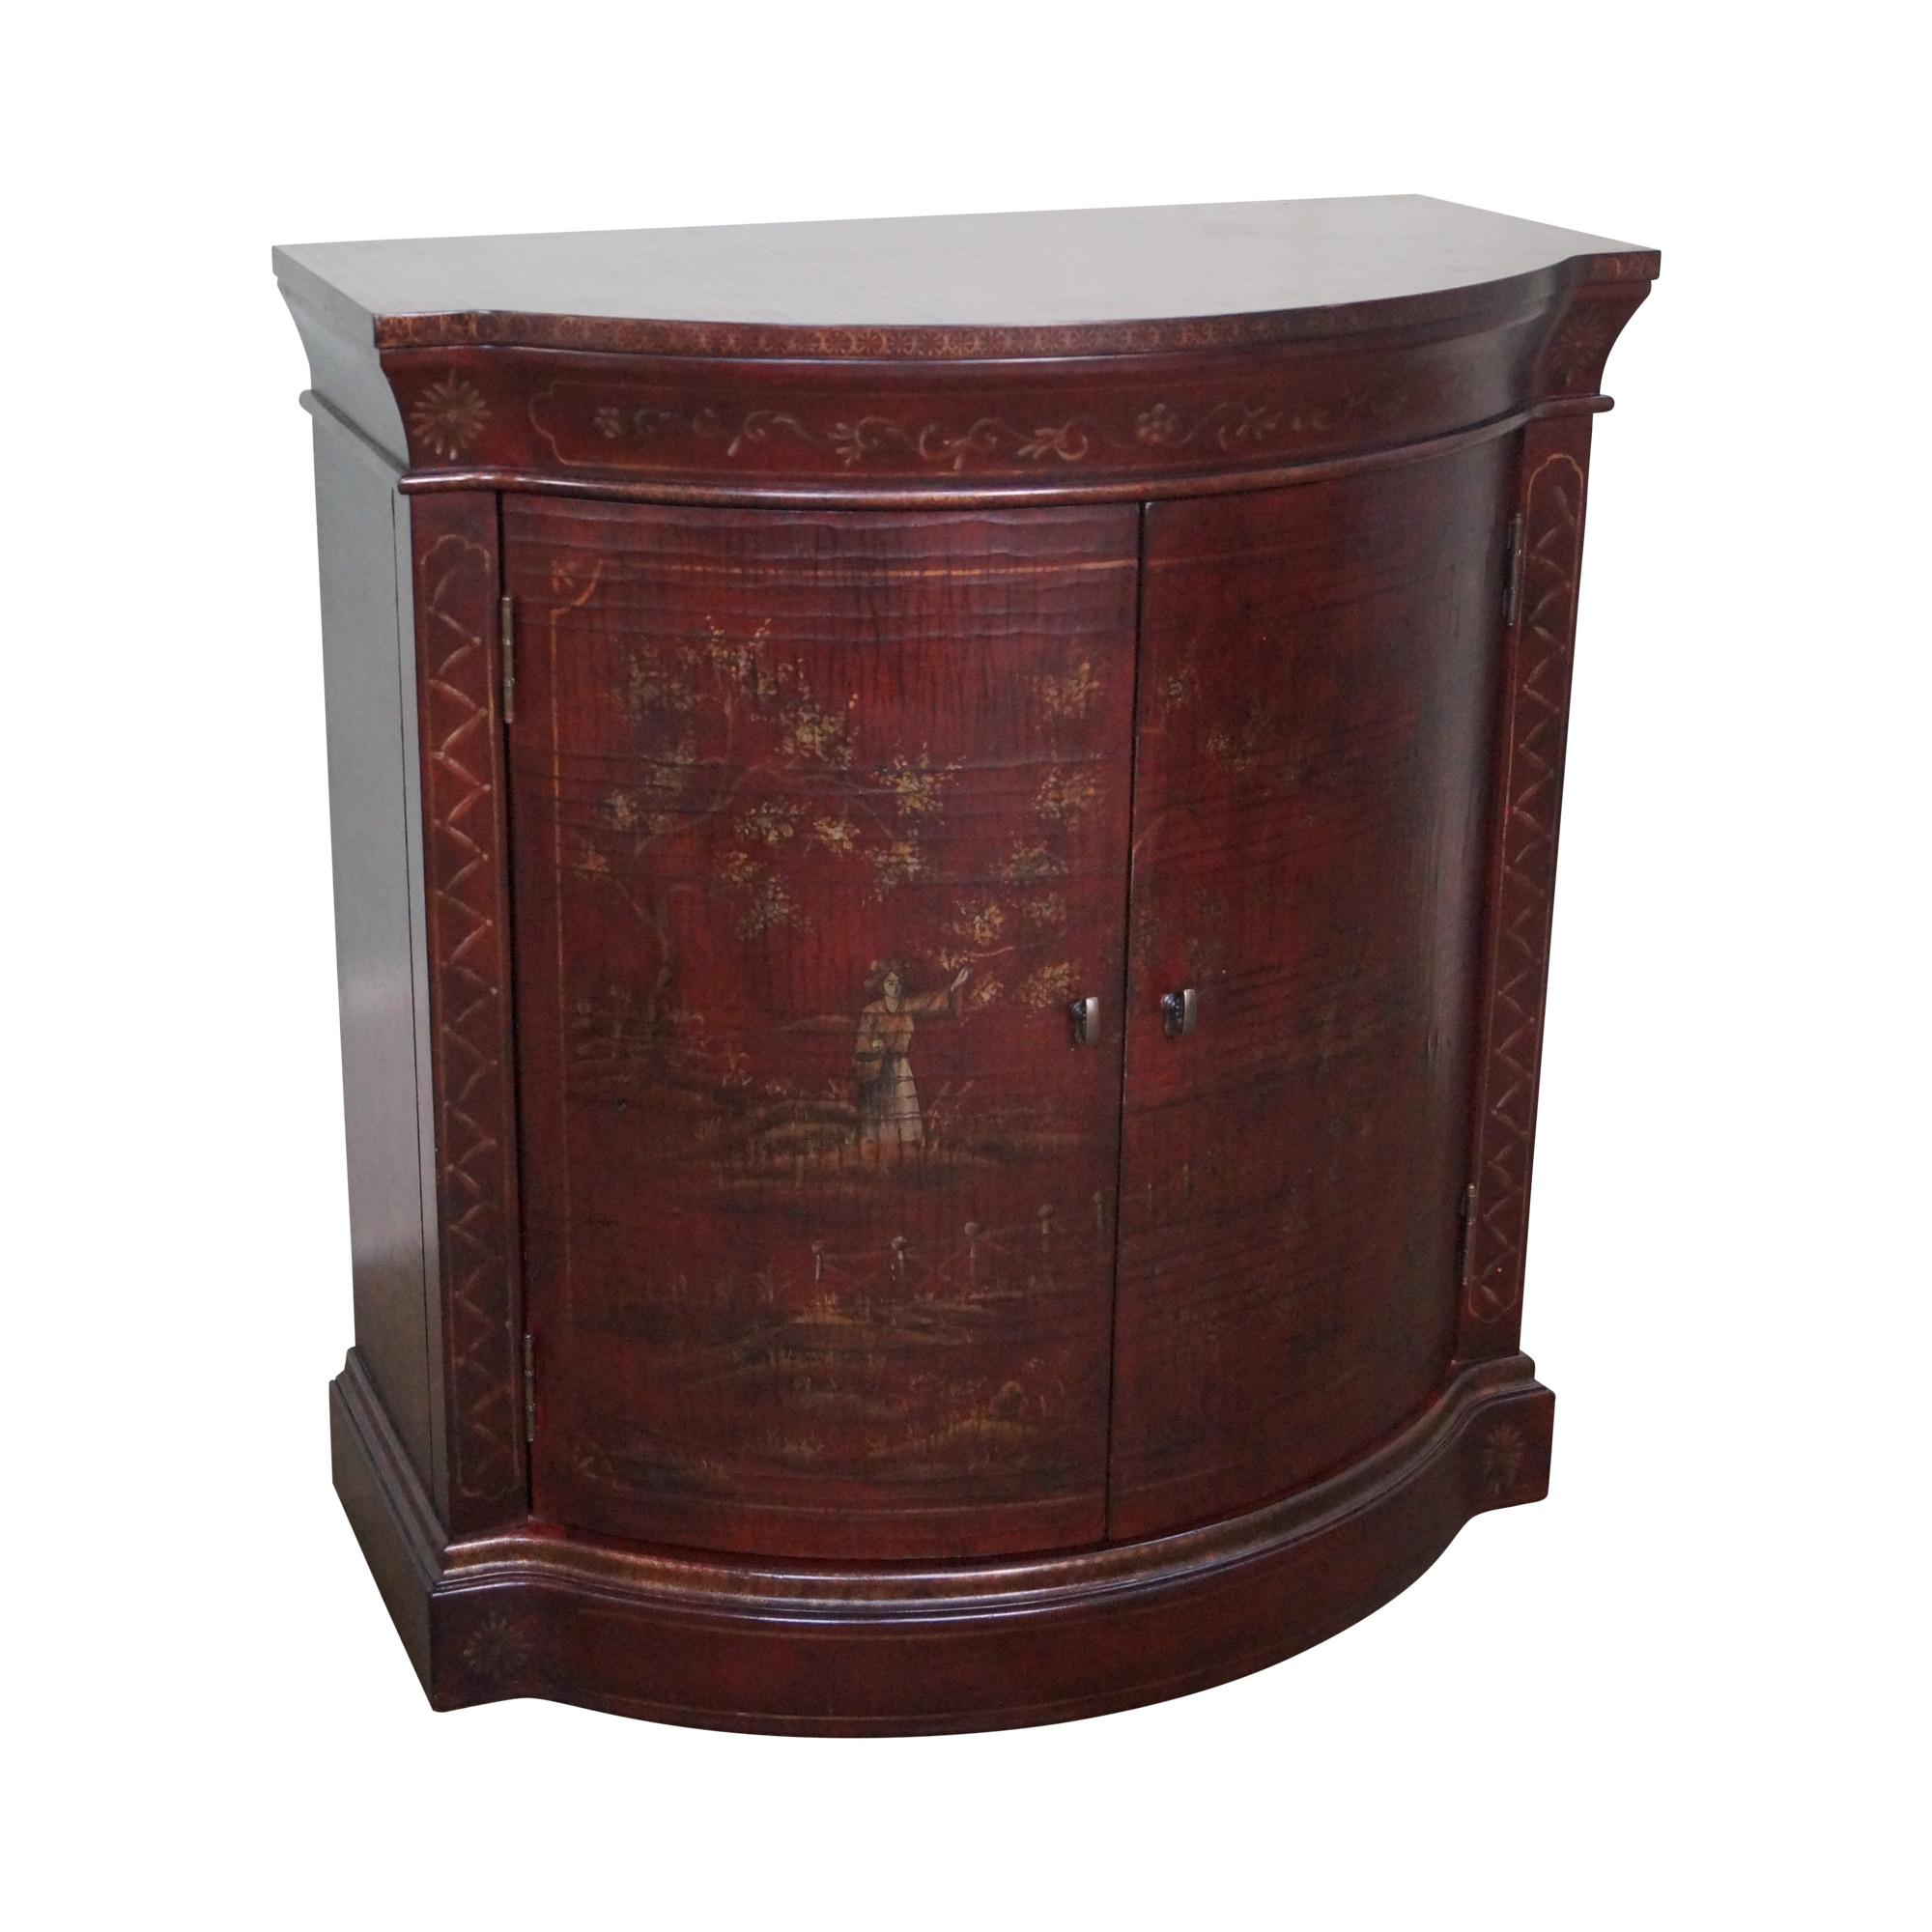 Ethan Allen Chinoiserie Crackle Painted 2 Door Demilune  : ethan allen chinoiserie crackle painted 2 door demilune console 6648 from www.chairish.com size 2000 x 2000 jpeg 226kB